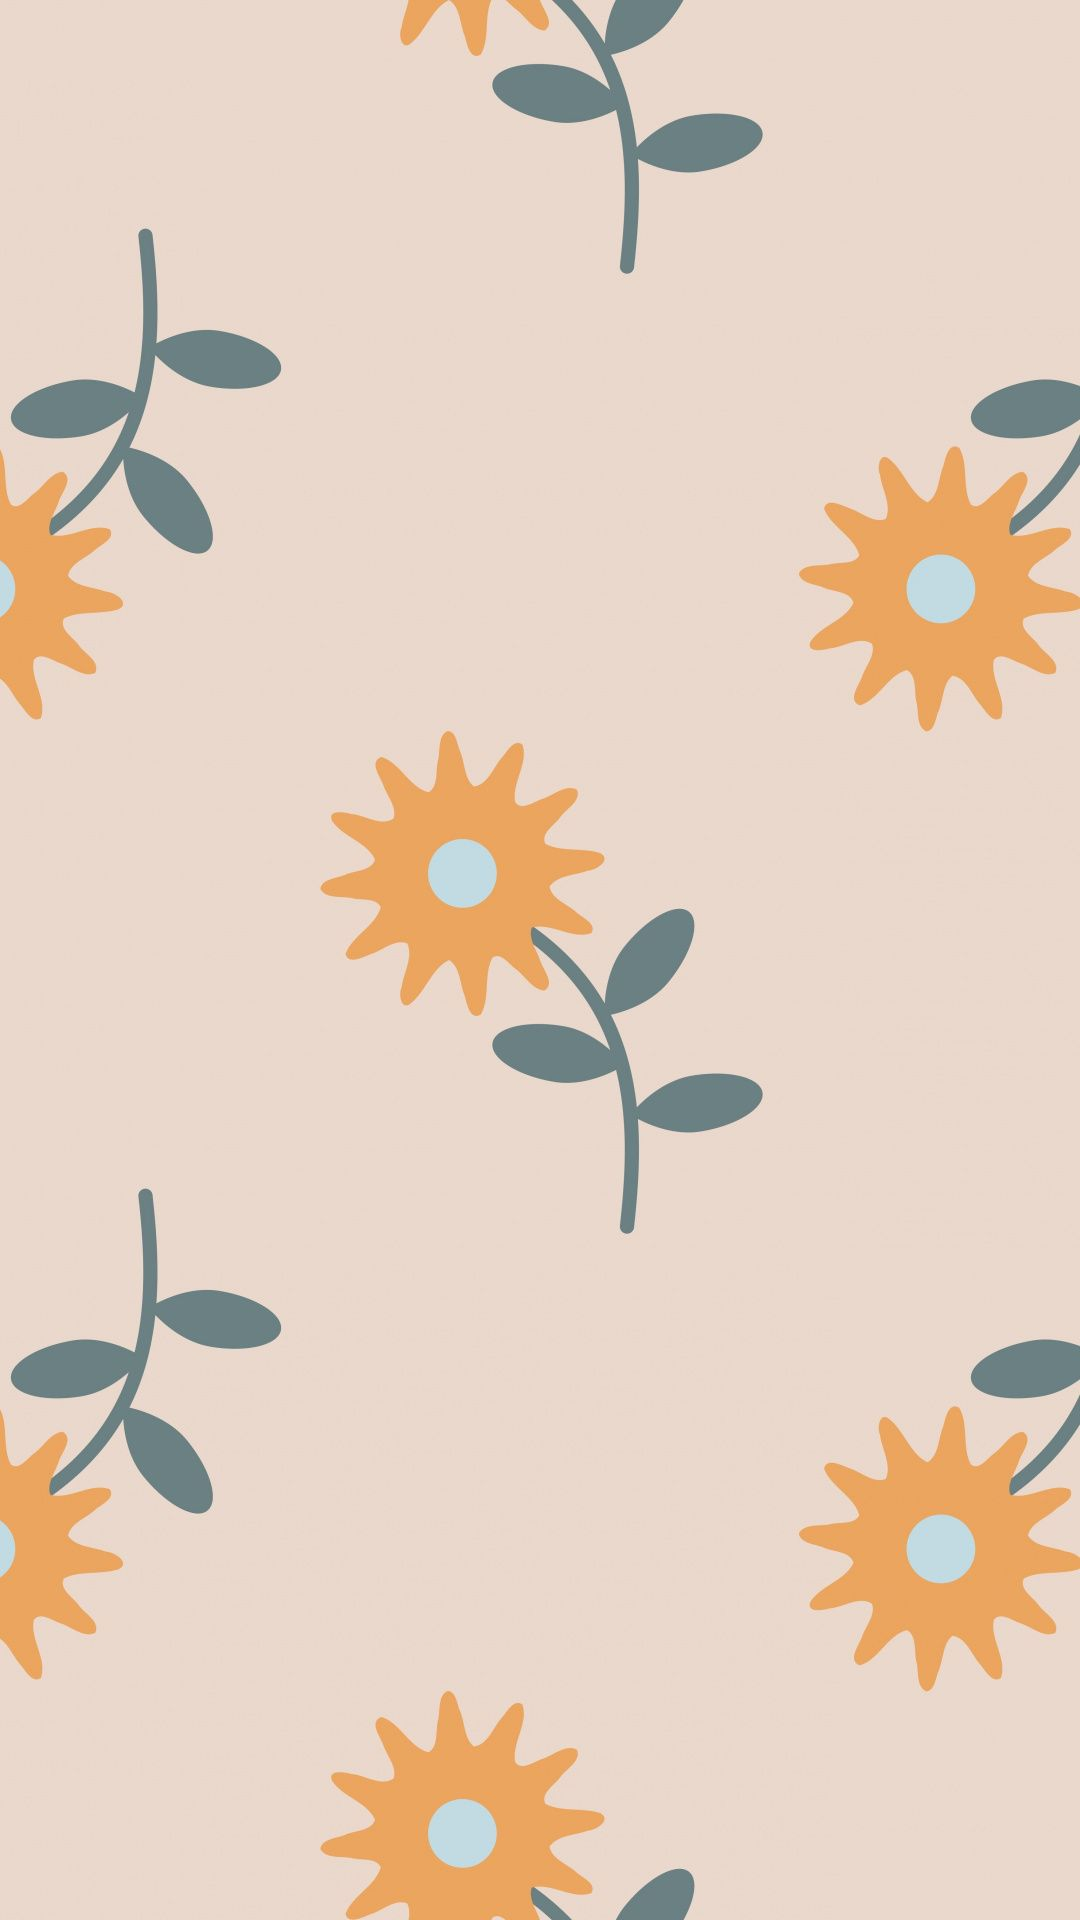 Texture Floral Pattern Abstract 1080x1920 Wallpaper Vintage Flowers Wallpaper Cute Patterns Wallpaper Pretty Wallpaper Iphone